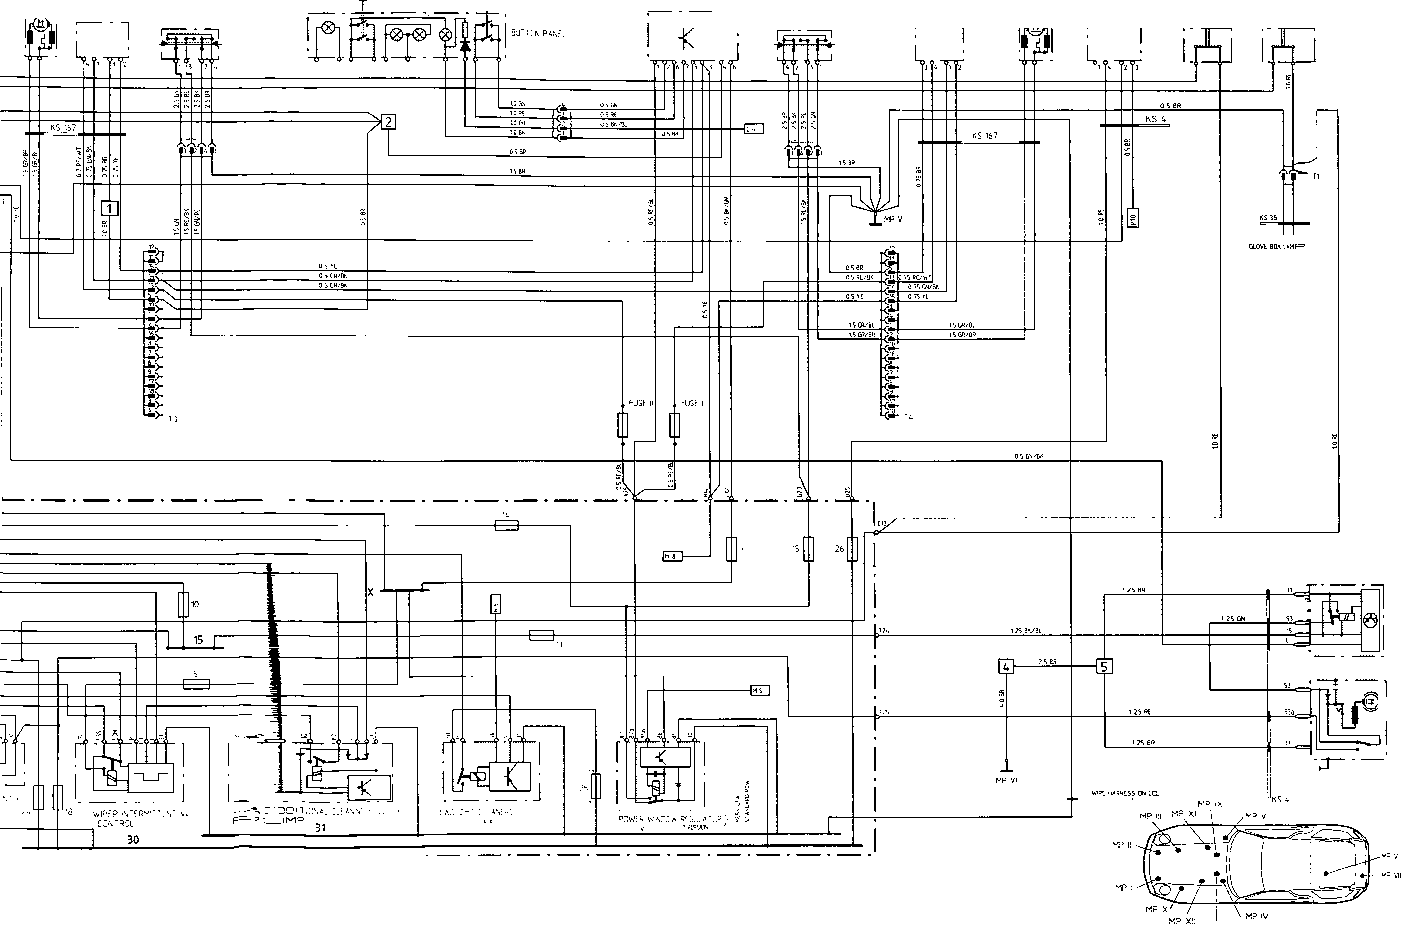 Wiring Diagram Iype 928 S Model 88 Page